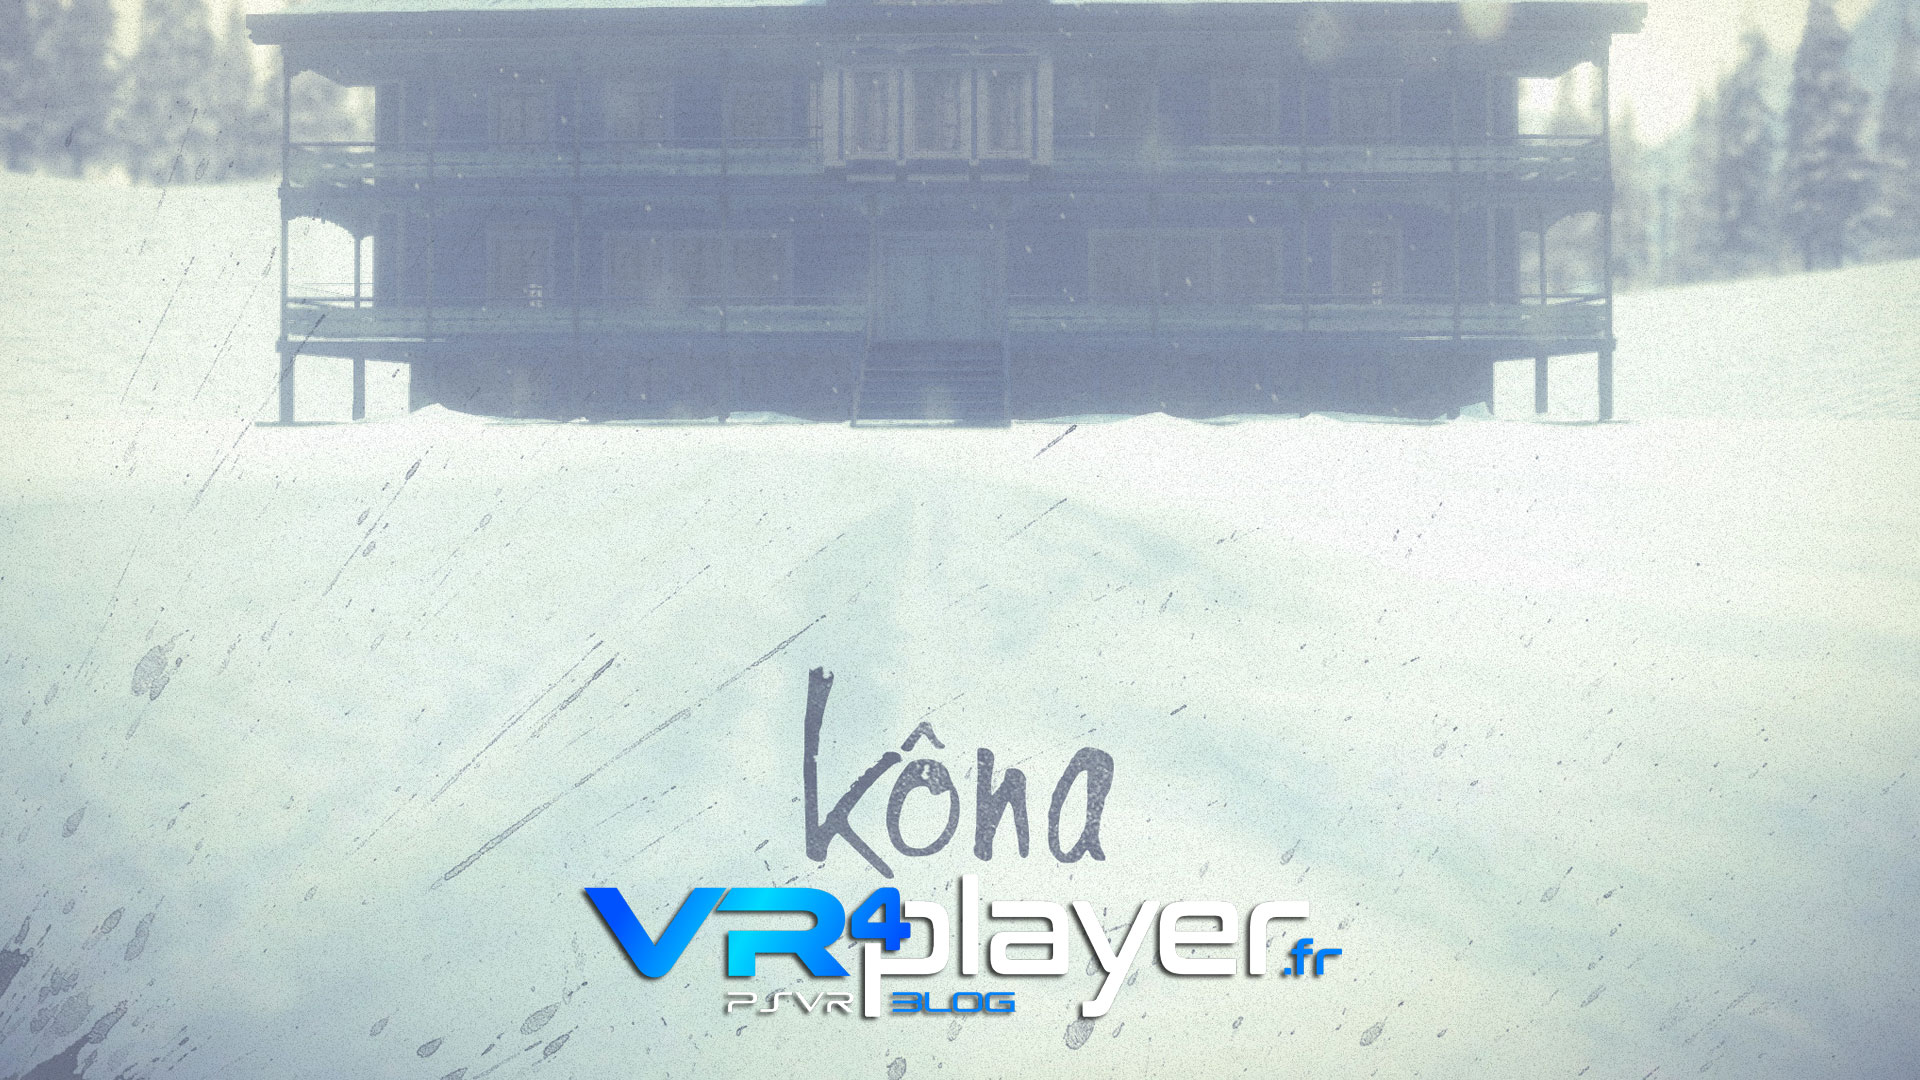 Kôna disponible sur PSVR vr4player.fr